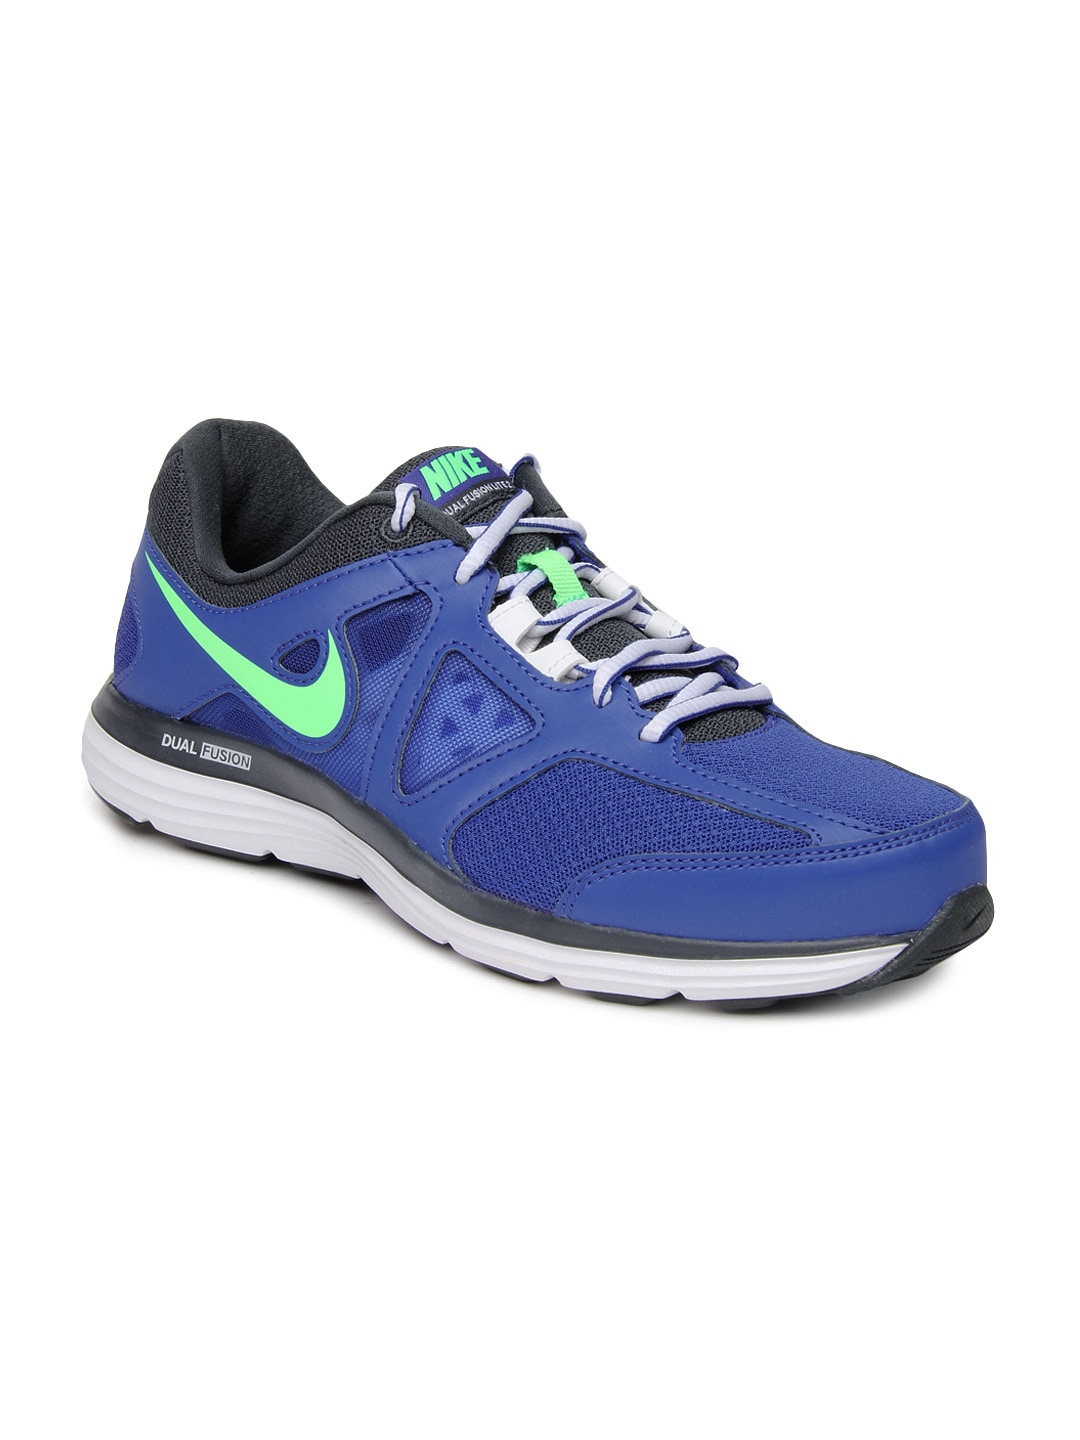 best website 1871d d9978 ... Red Black and other Running at. Our wide selection is. nike dual fusion  lite boys shoes